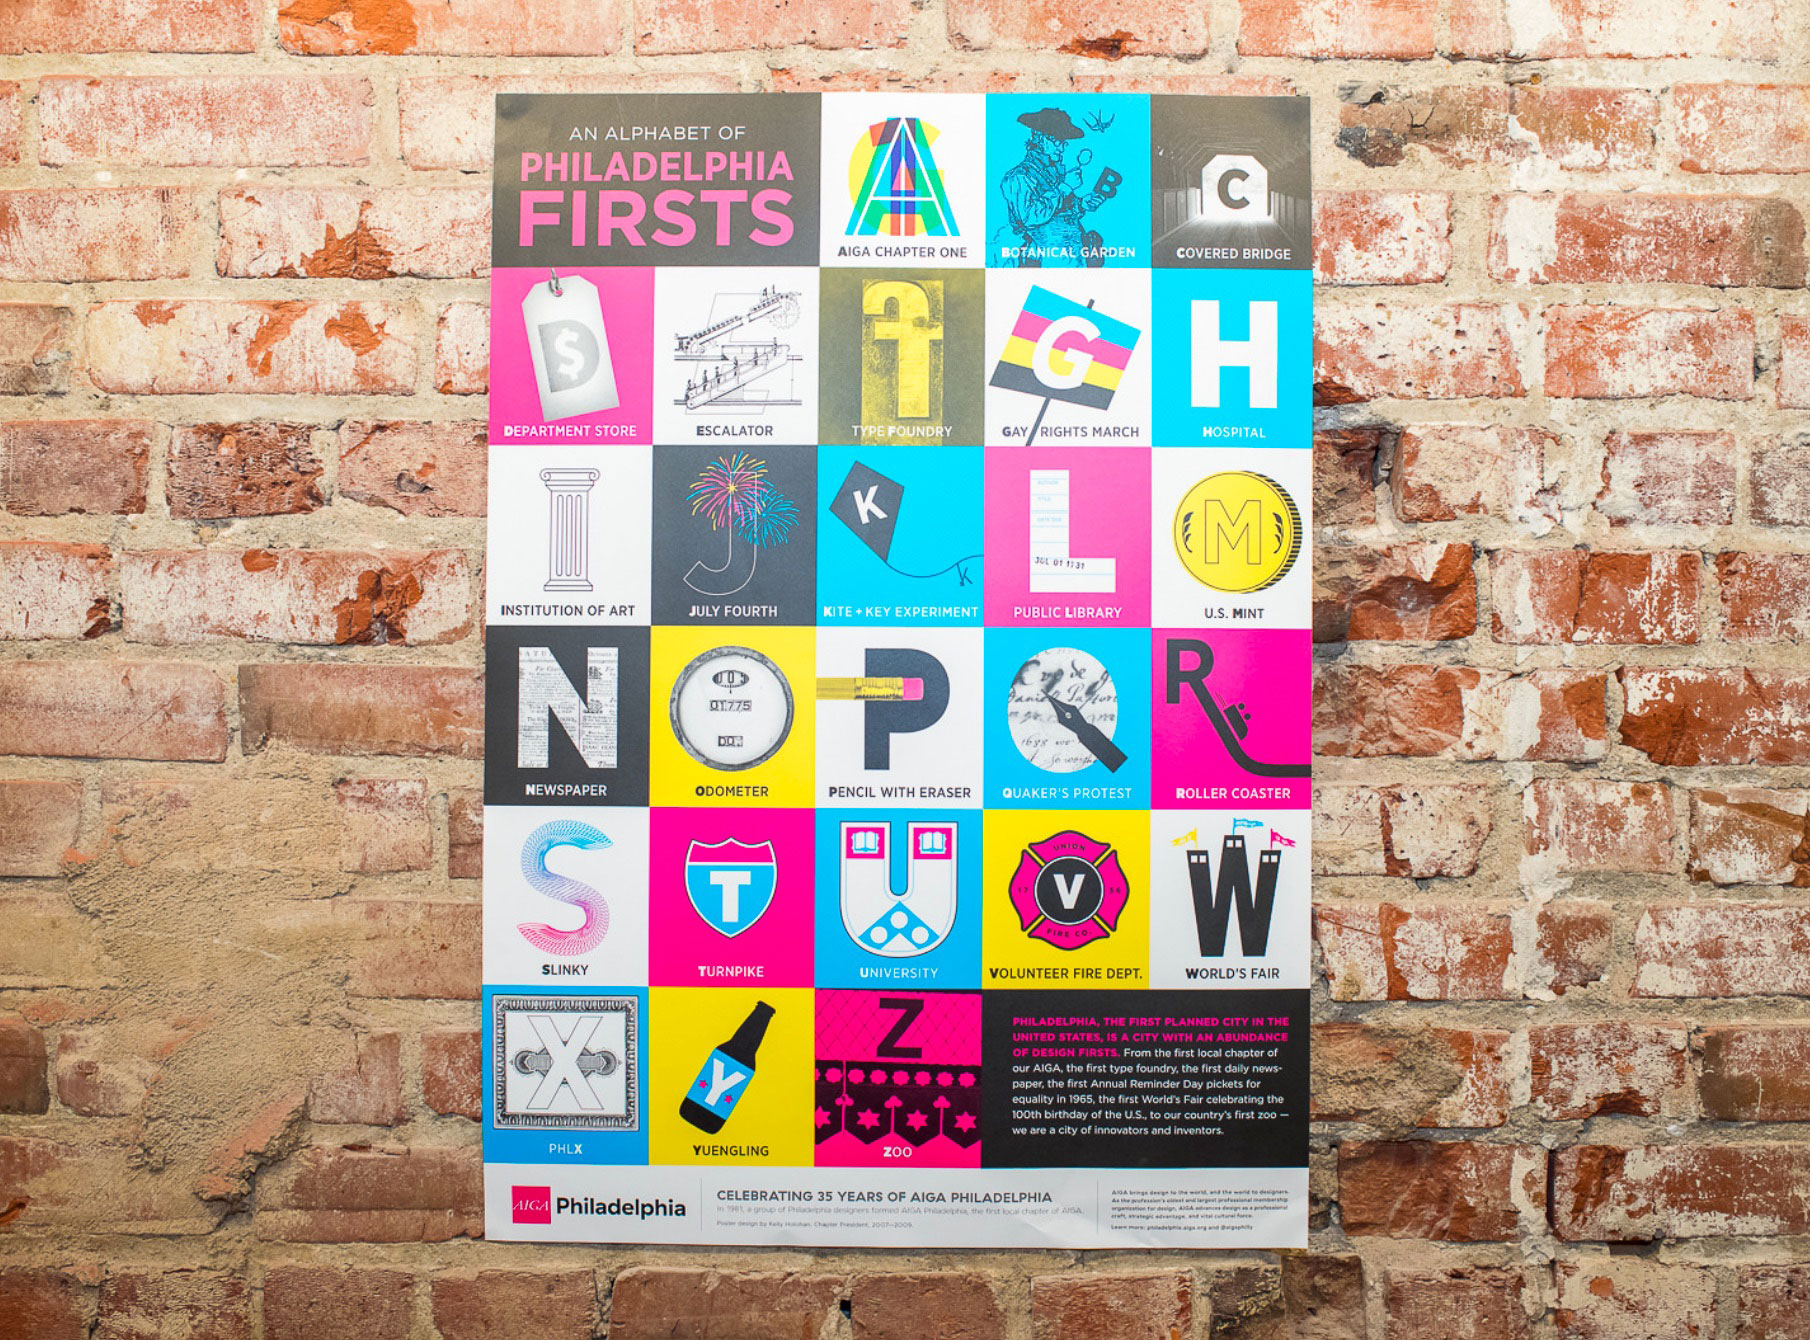 hp indigo gives aiga philadelphia liberty to celebrate 35 years